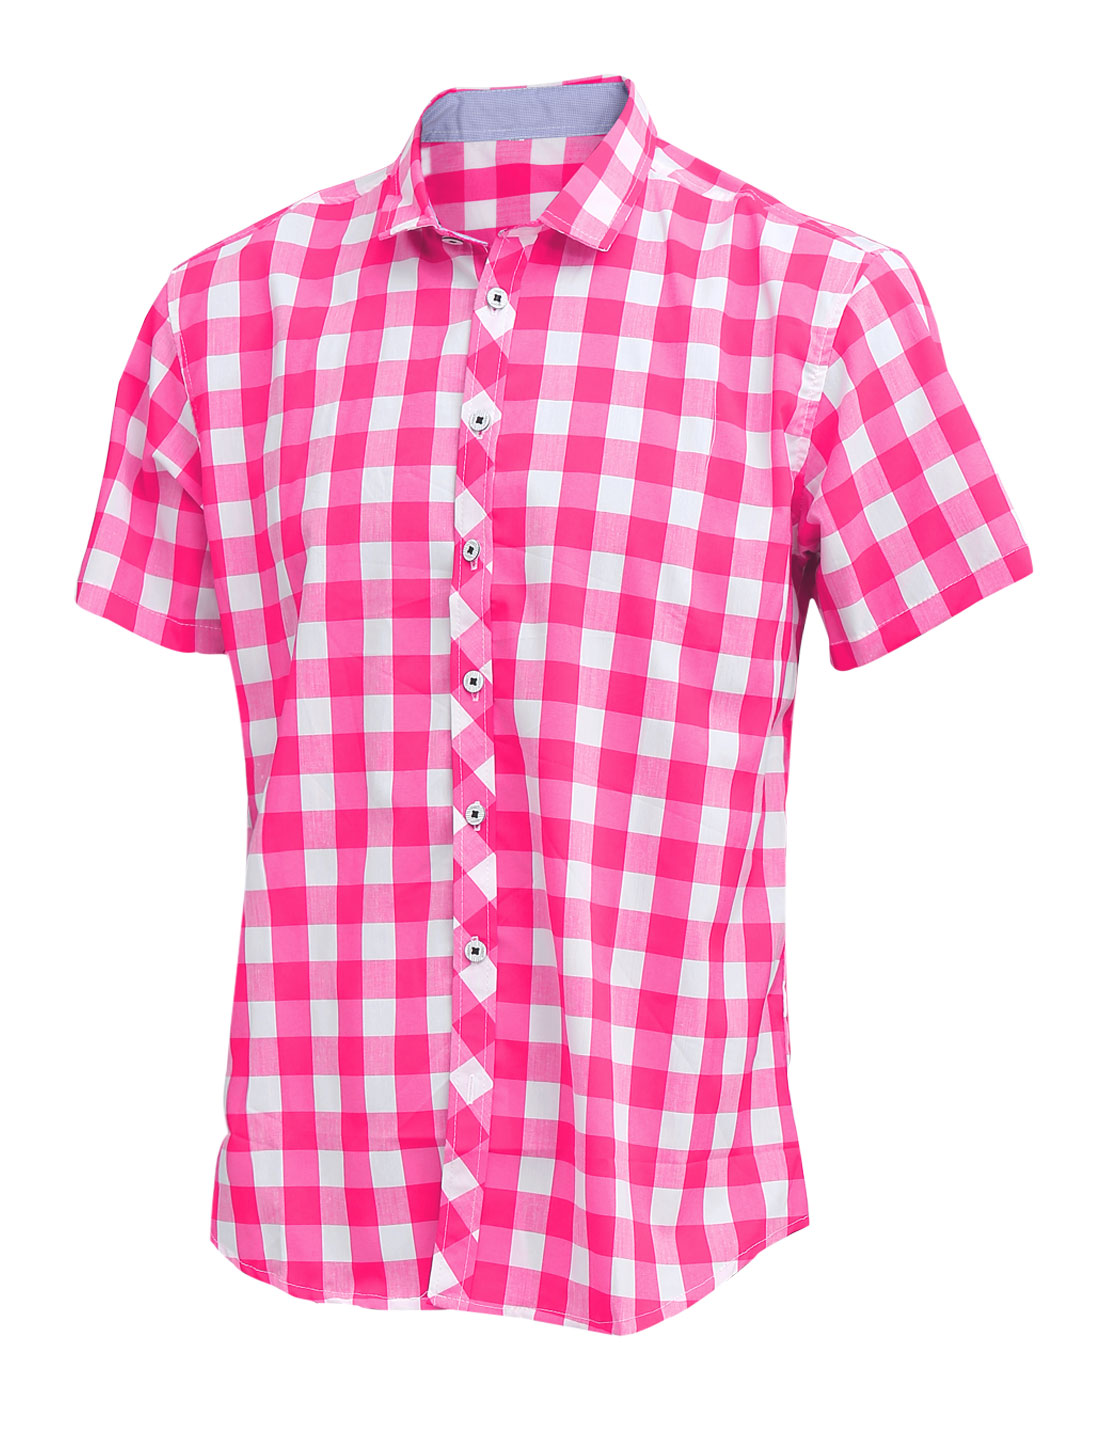 Men Point Collar Short Sleeve Button Up Plaids Pattern Shirt Fuchsia M